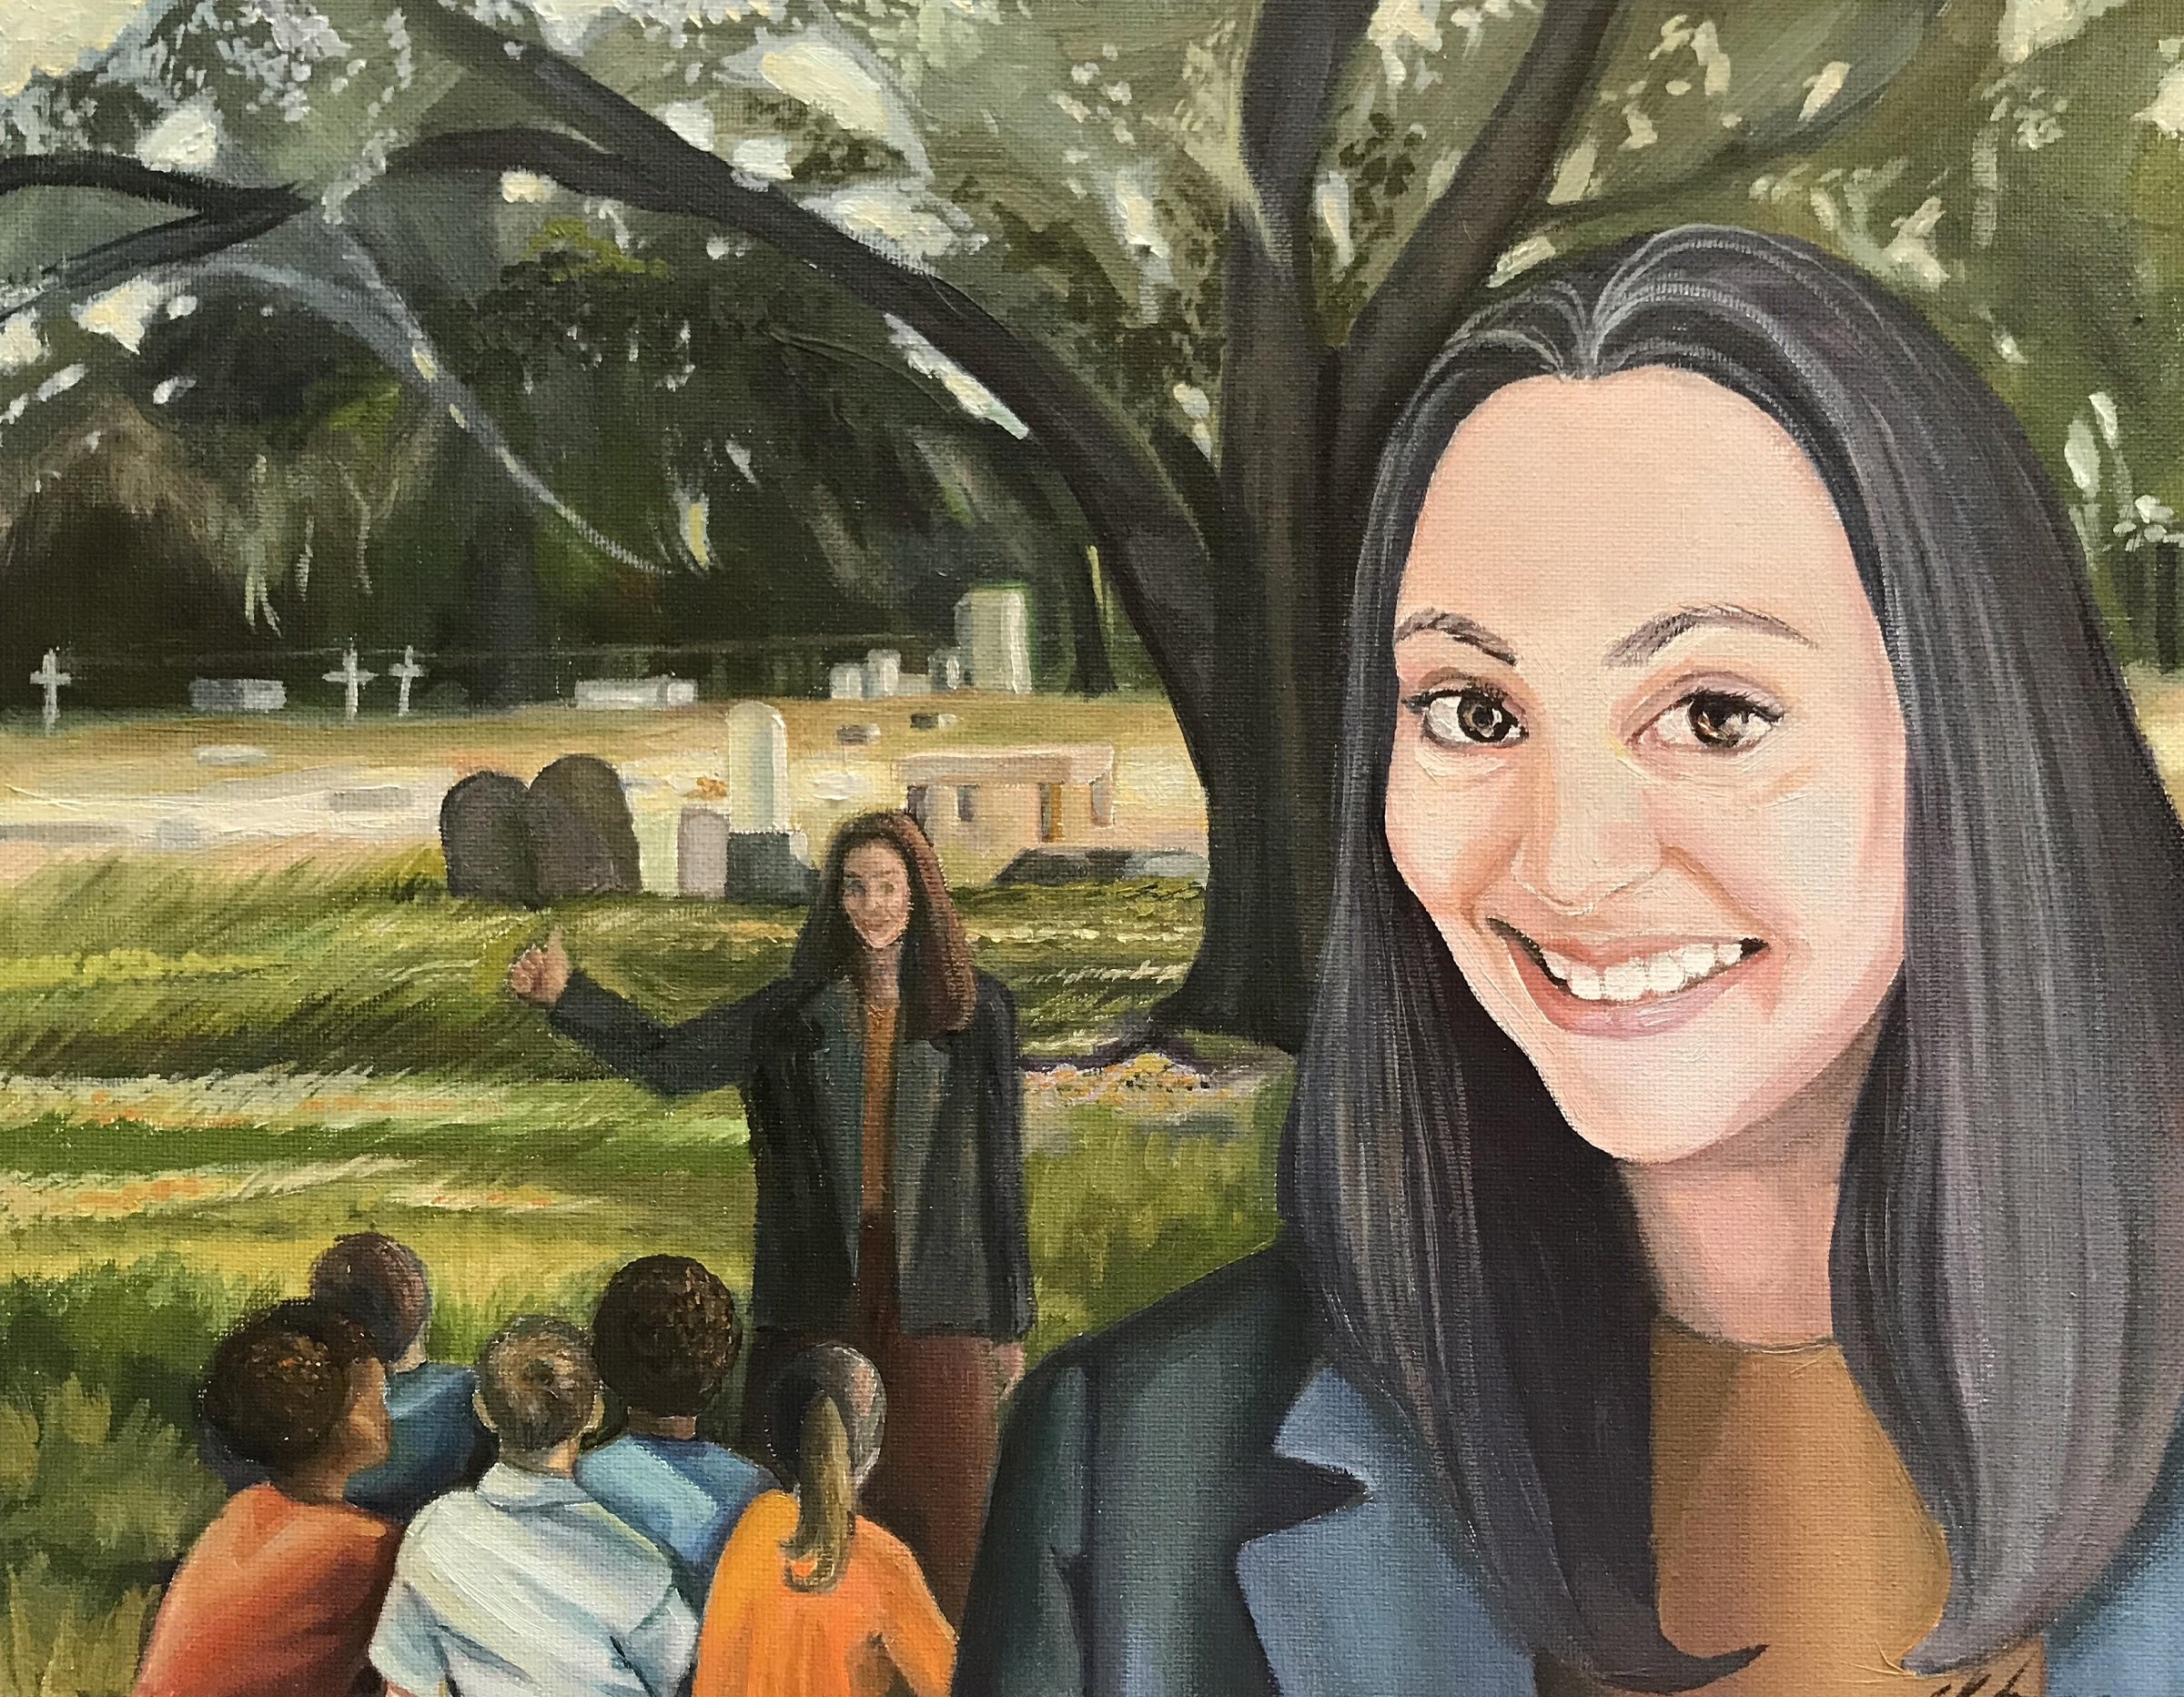 Illustration of a woman from the shoulders up and a background that includes another group of people under a tree